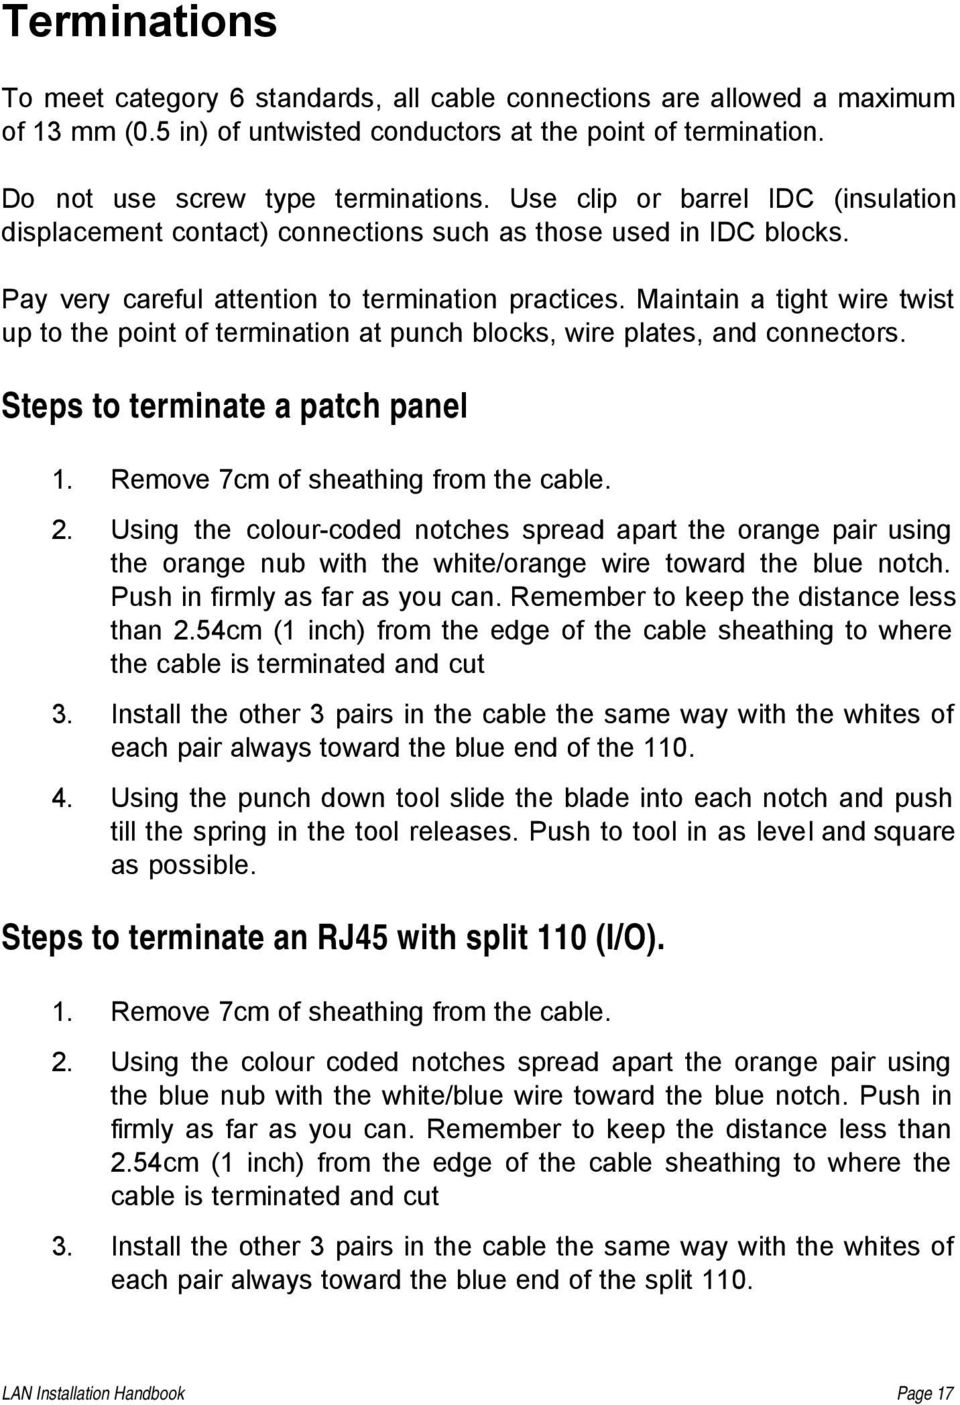 Lan Installation Handbook Pdf Split Ether Cable Together With Patch Panel Wiring Also Manual Sobre Maintain A Tight Wire Twist Up To The Point Of Termination At Punch Blocks